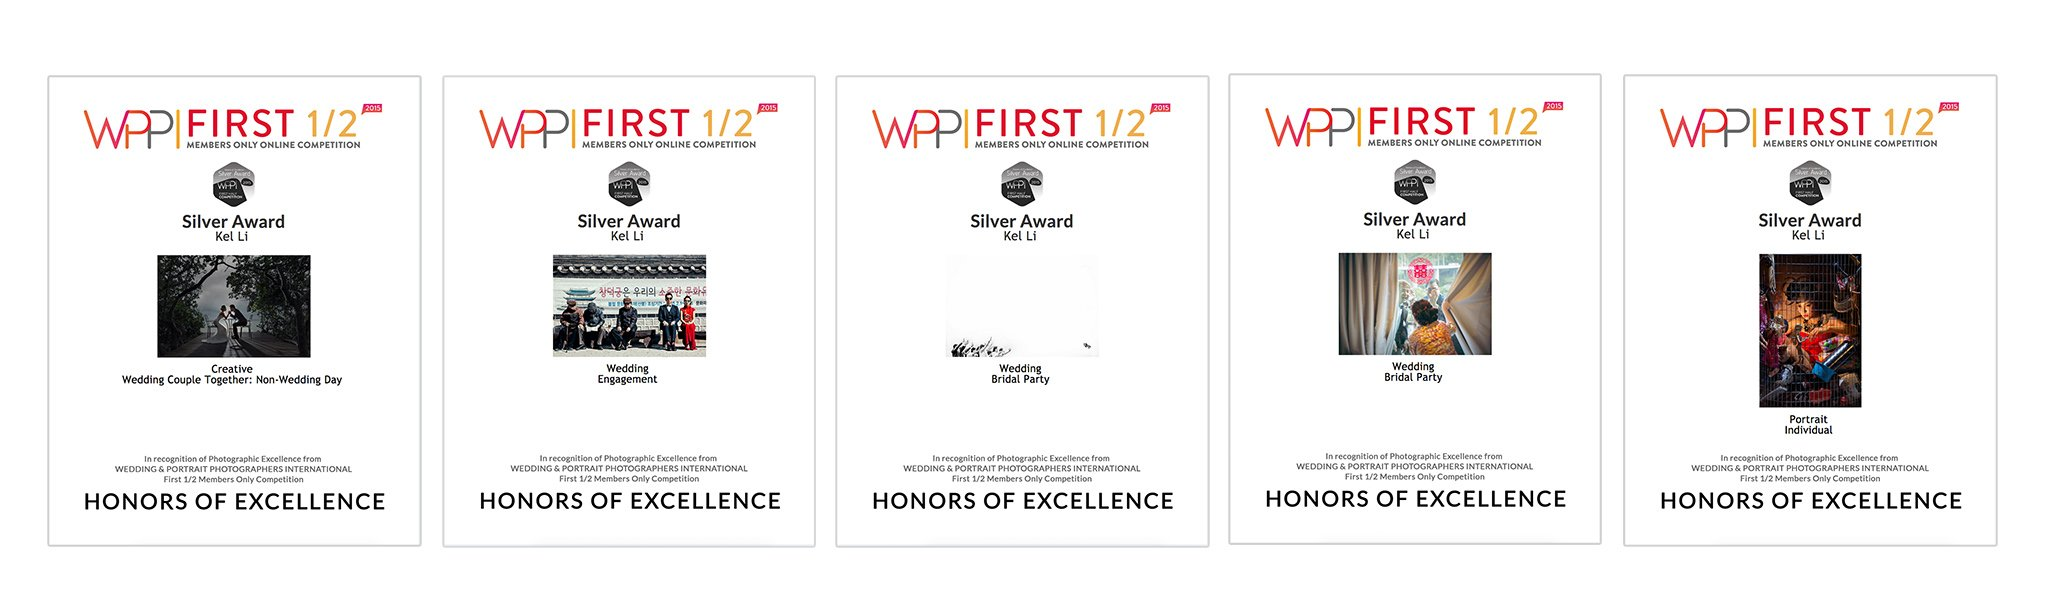 WPPI比賽結果,獲得5個HONORS OF EXCELLENCE